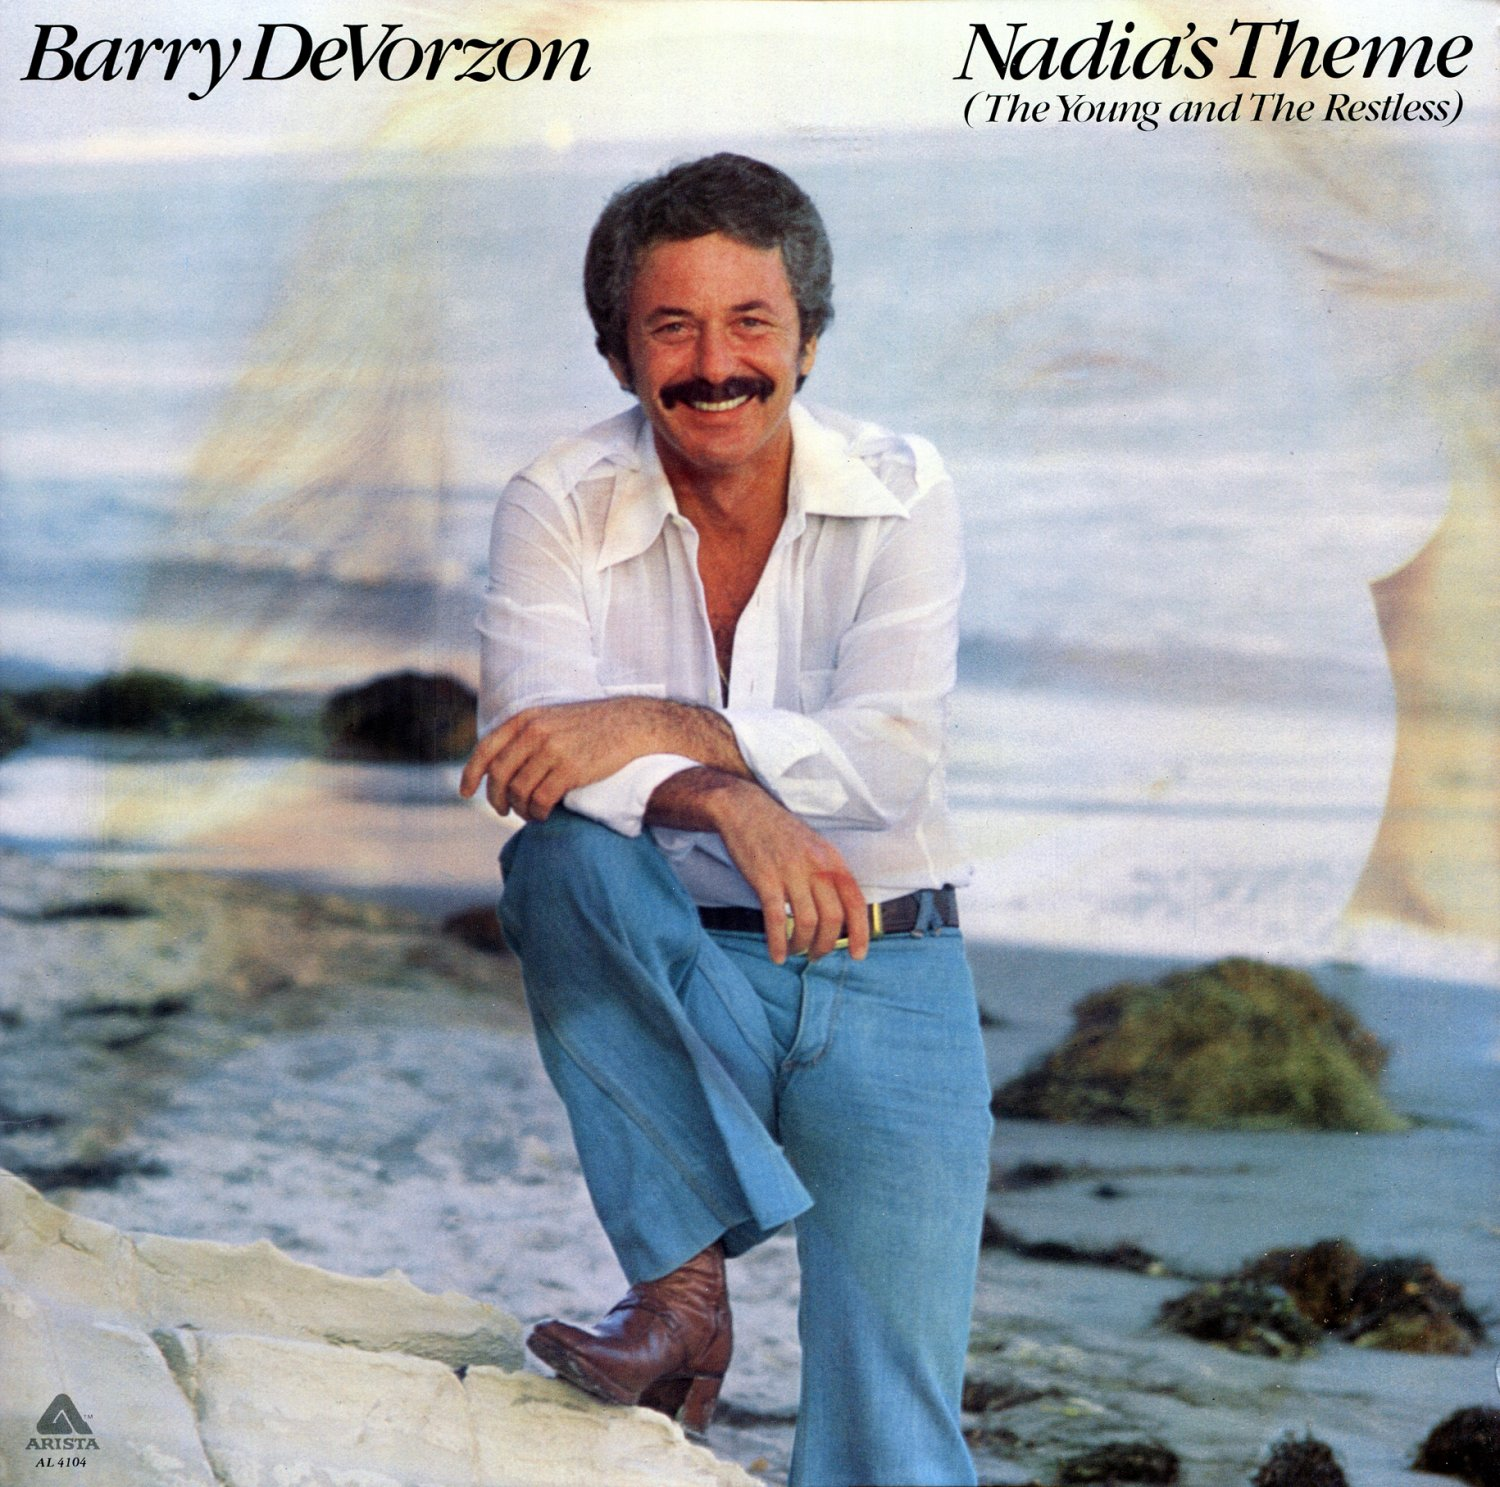 Barry De Vorzon - Nadia's Theme (The Young And The Restless), Soundtrack/Music Collection LP/CD